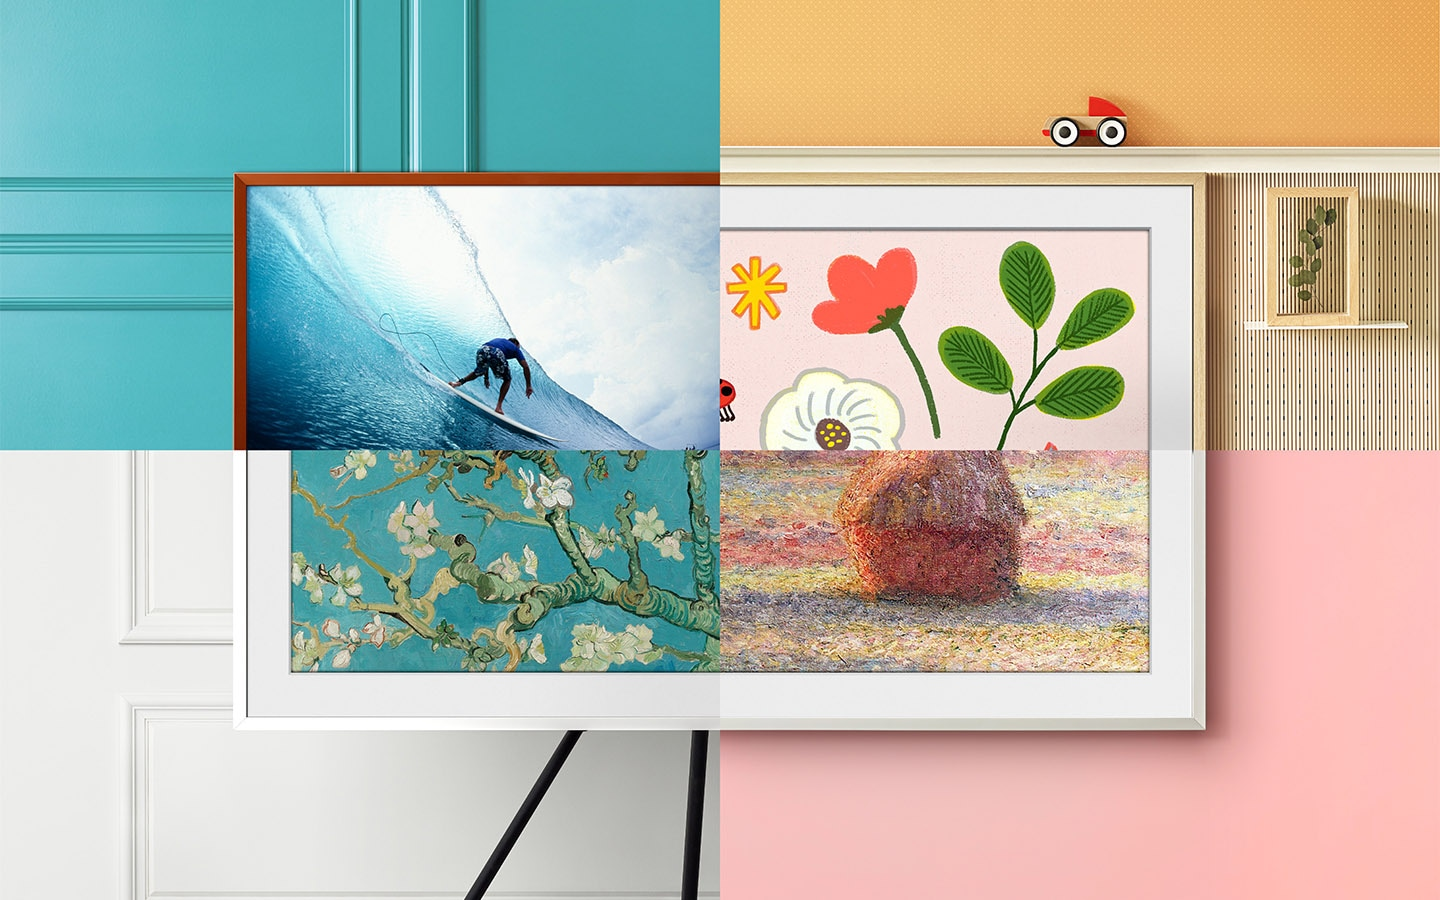 The Frame is divided into 4 cross sections. Each cross section is showing a different piece of artwork and highlighting one of various customizable features of The Frame including bezel color, bezel style, and studio stand accessory.